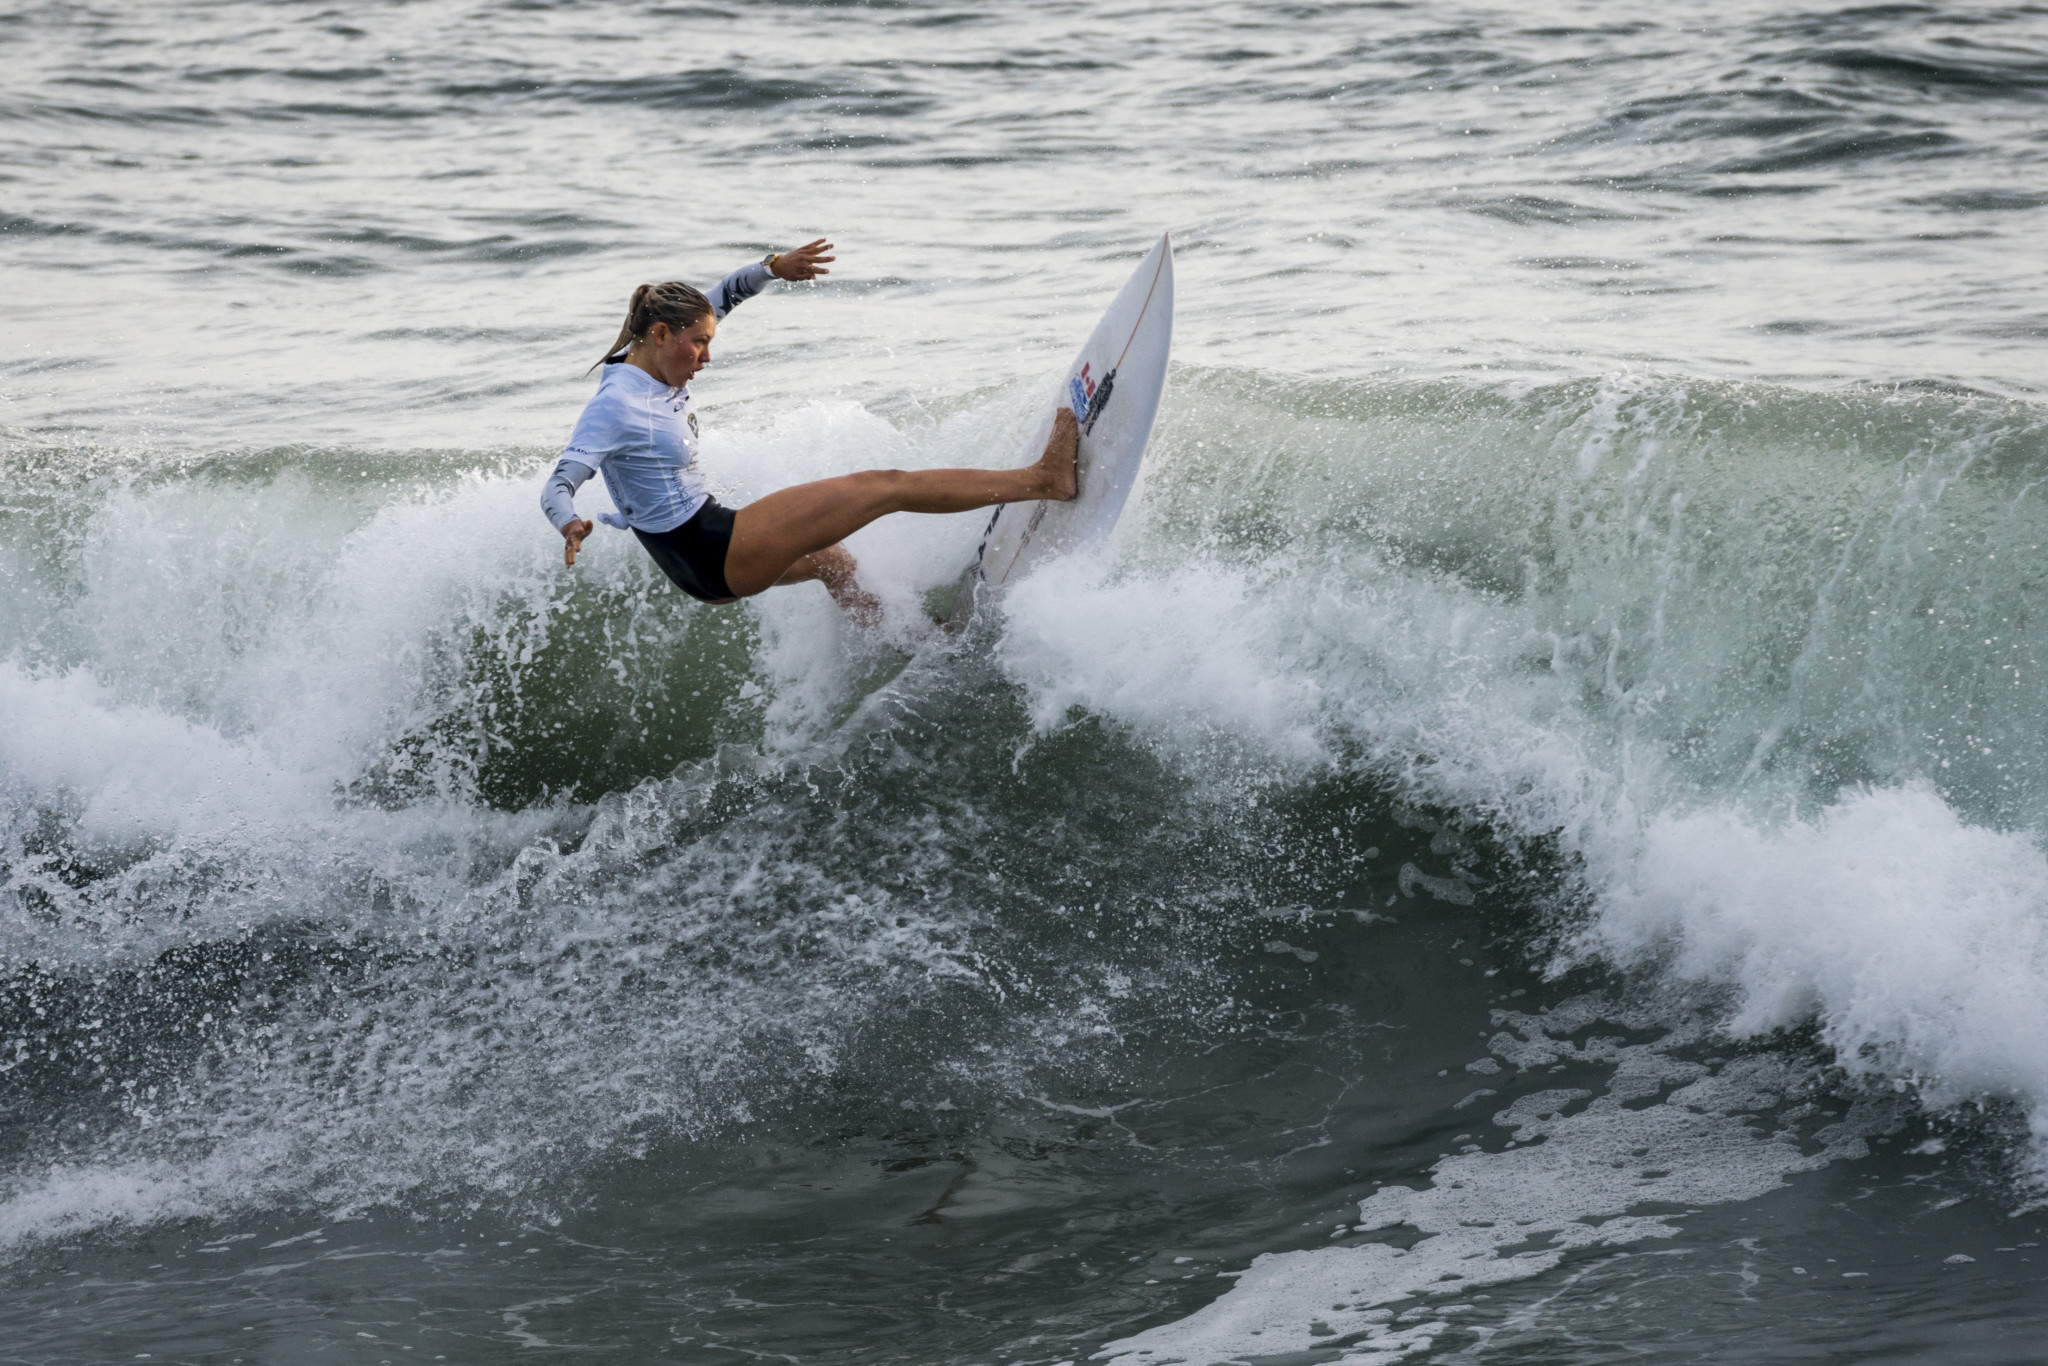 Girls impress on first full day of action at 2018 ISA World Junior Surfing Championships